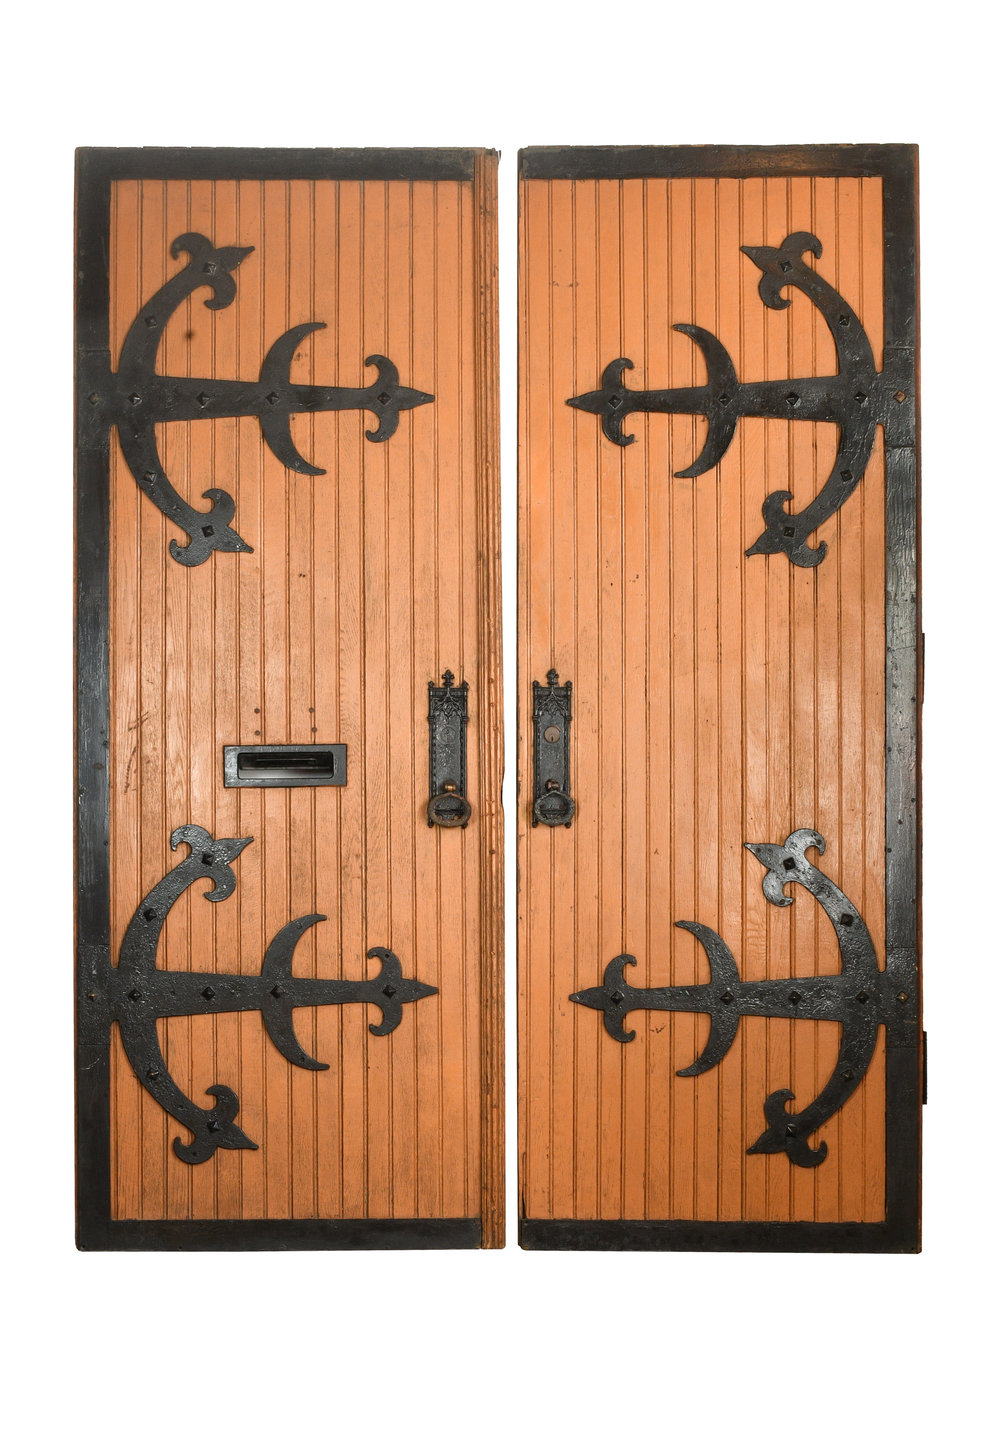 47742-double-doors-with-strap-hinges-painted-side-angle-full.jpg